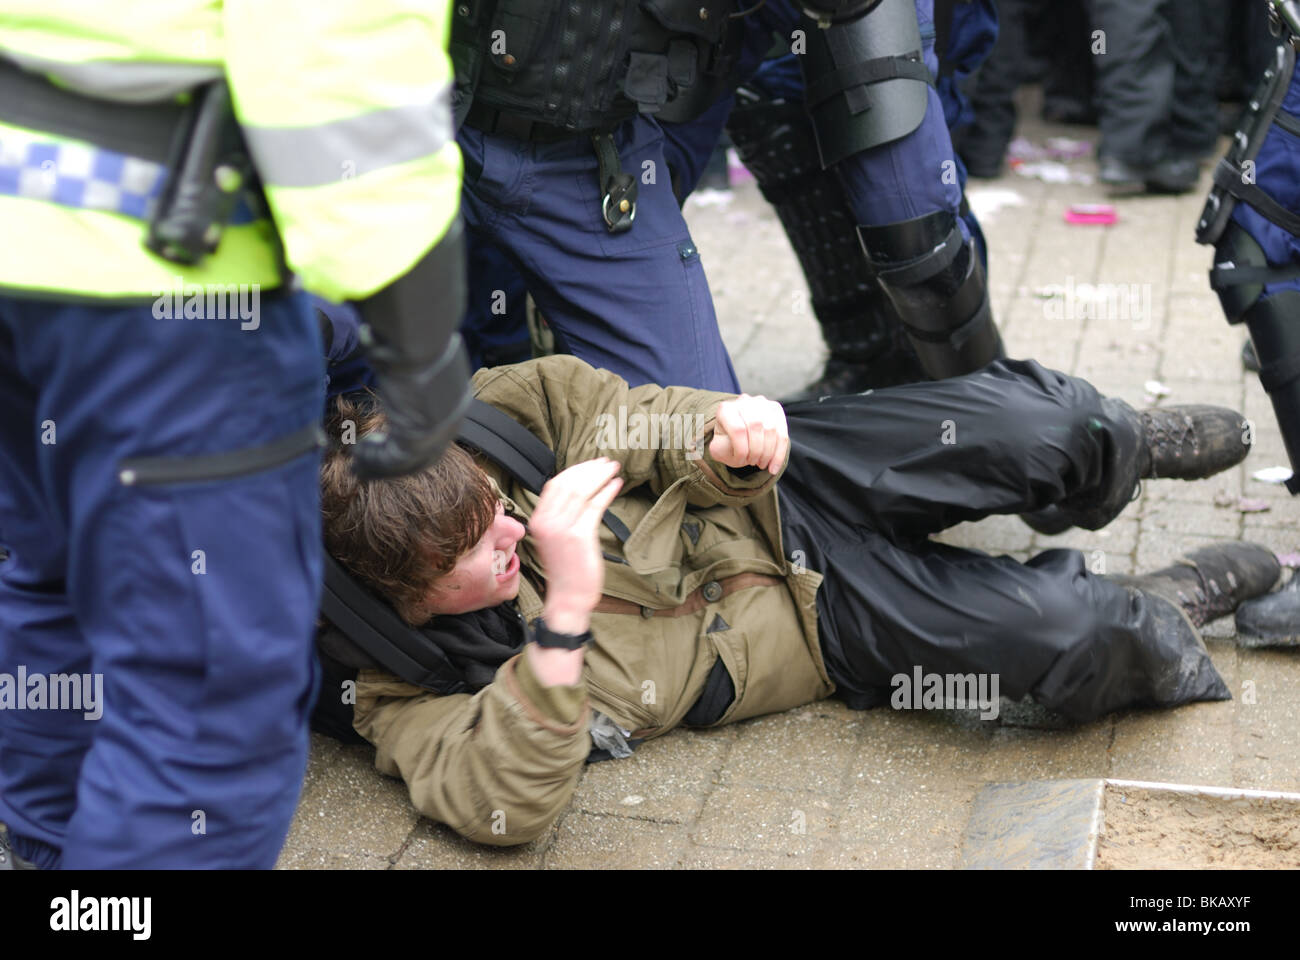 A Unite Against Fascism protester in Bolton rallying against the EDL is arrested by riot police in a brutal manner. - Stock Image